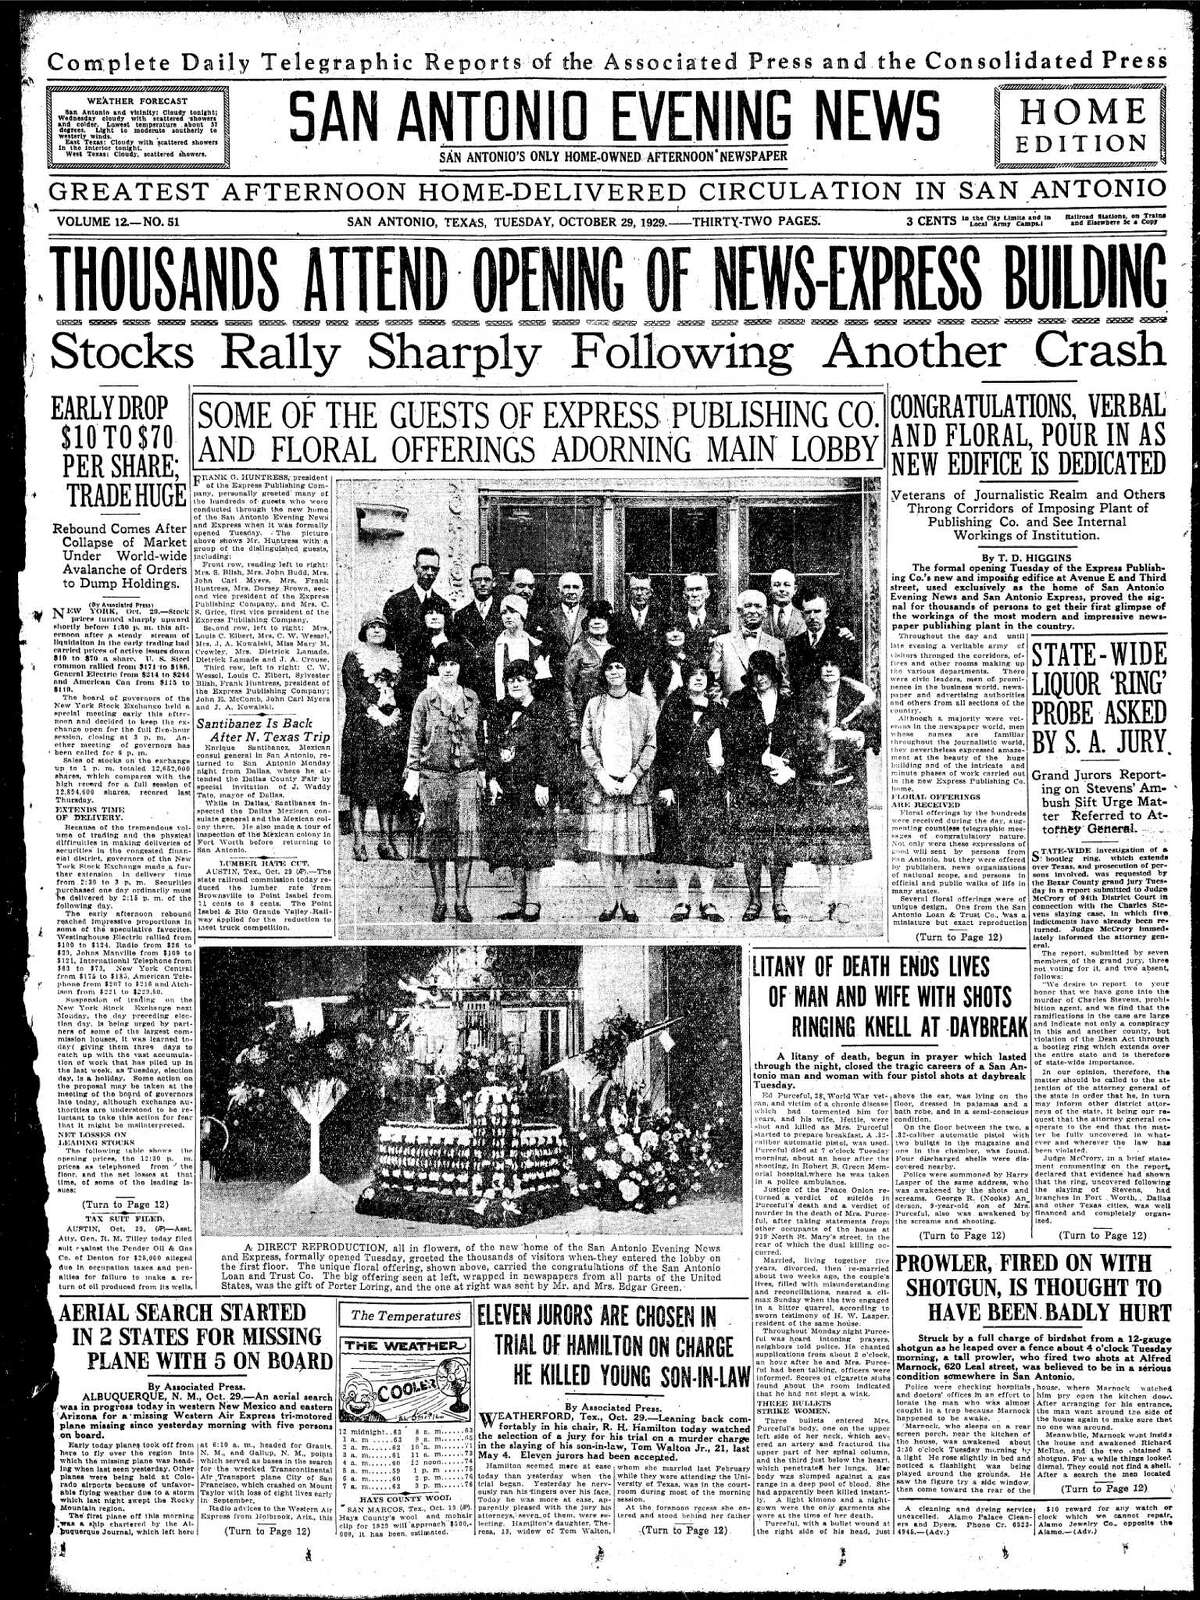 """The Home Edition for the San Antonio Evening News led the front page with this big headline: """"THOUSANDS ATTEND OPENING OF NEWS-EXPRESS BUILDING"""" and a headline under it said, """"Stocks Rally Sharply Following Another Crash."""" The date was Oct. 29, 1929."""